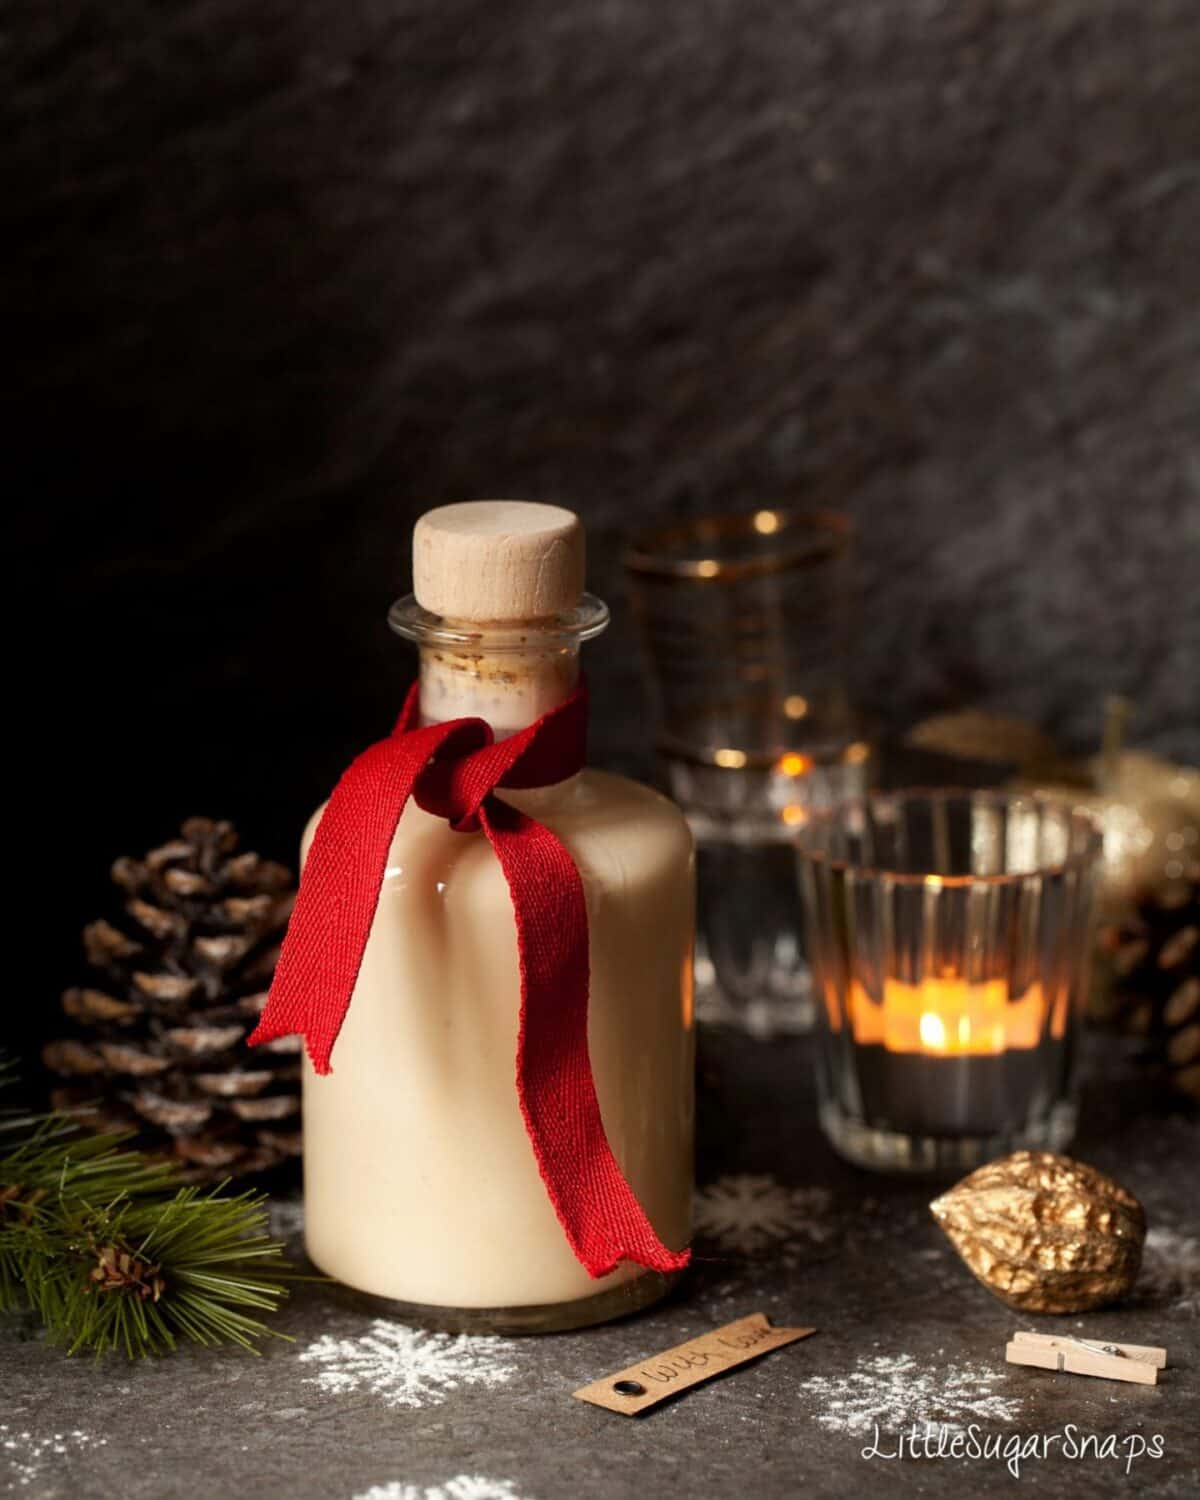 White Chocolate Liqueur in a bottle tied with a red ribbon.